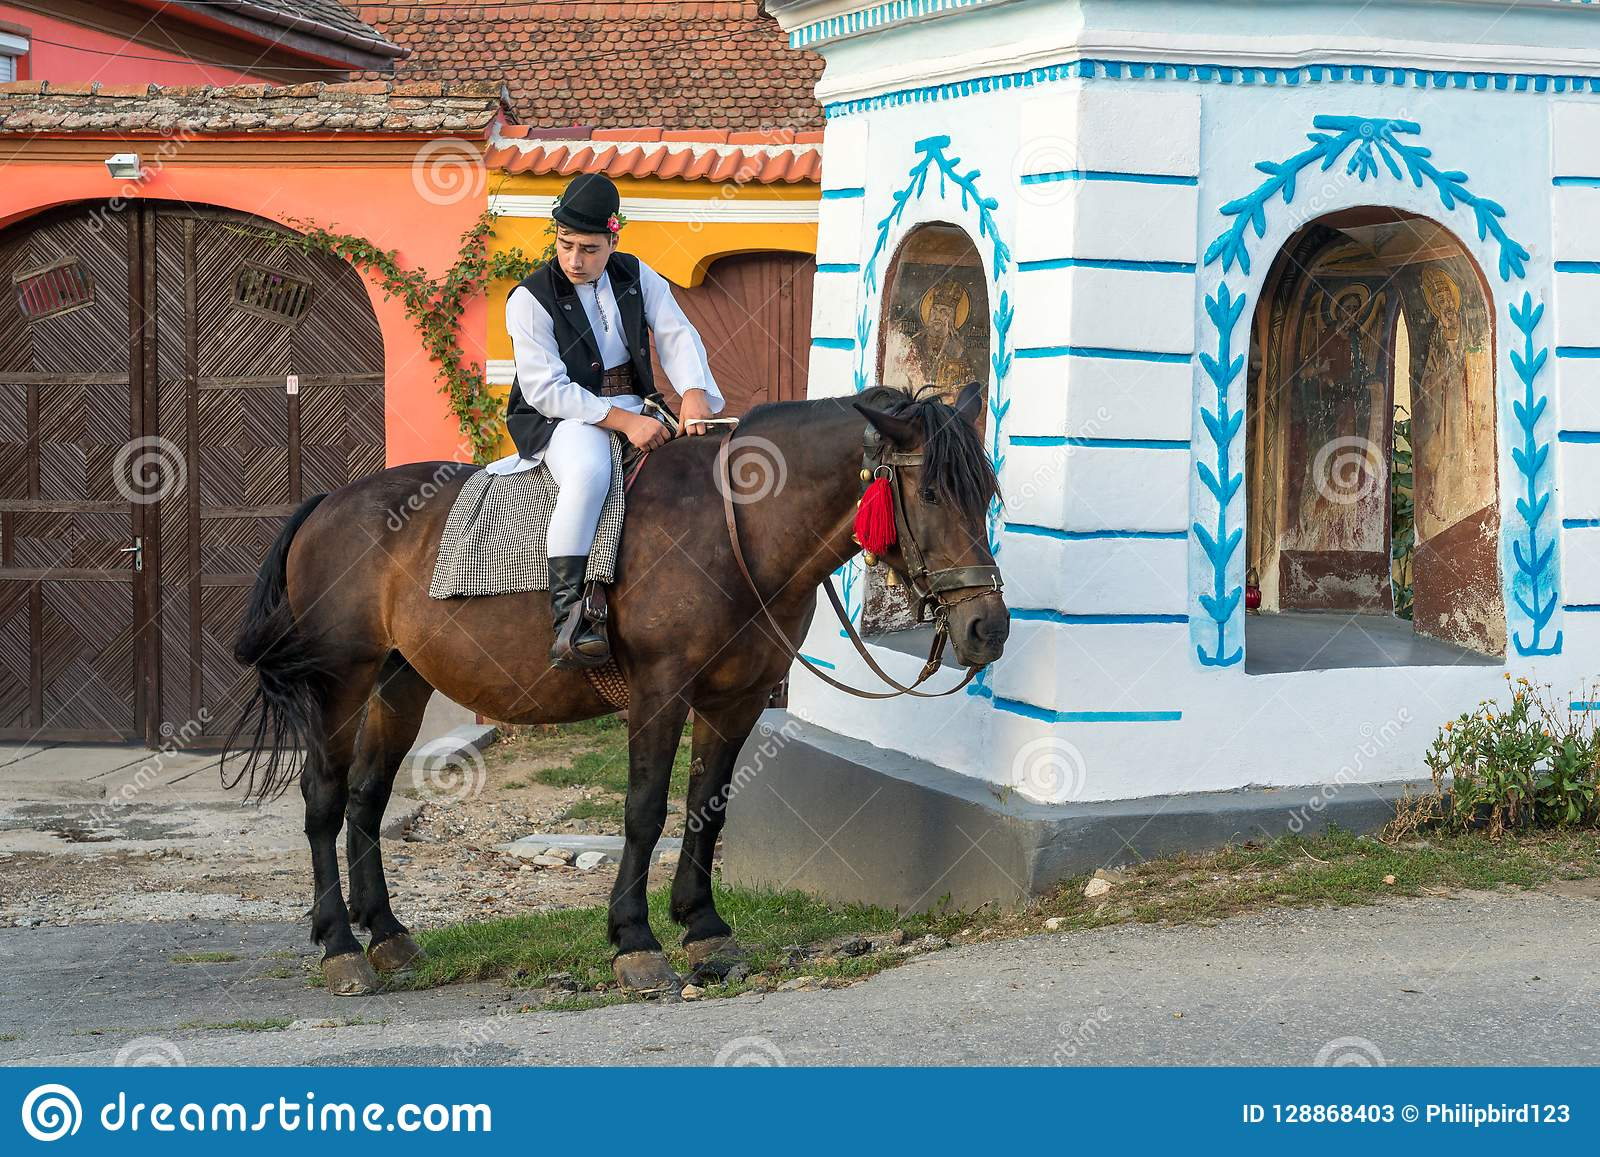 SIBIEL, TRANSYLVANIA/ROMANIA - SEPTEMBER 16 : Young man in traditional dress on a horse in Sibiel Transylvania Romania on